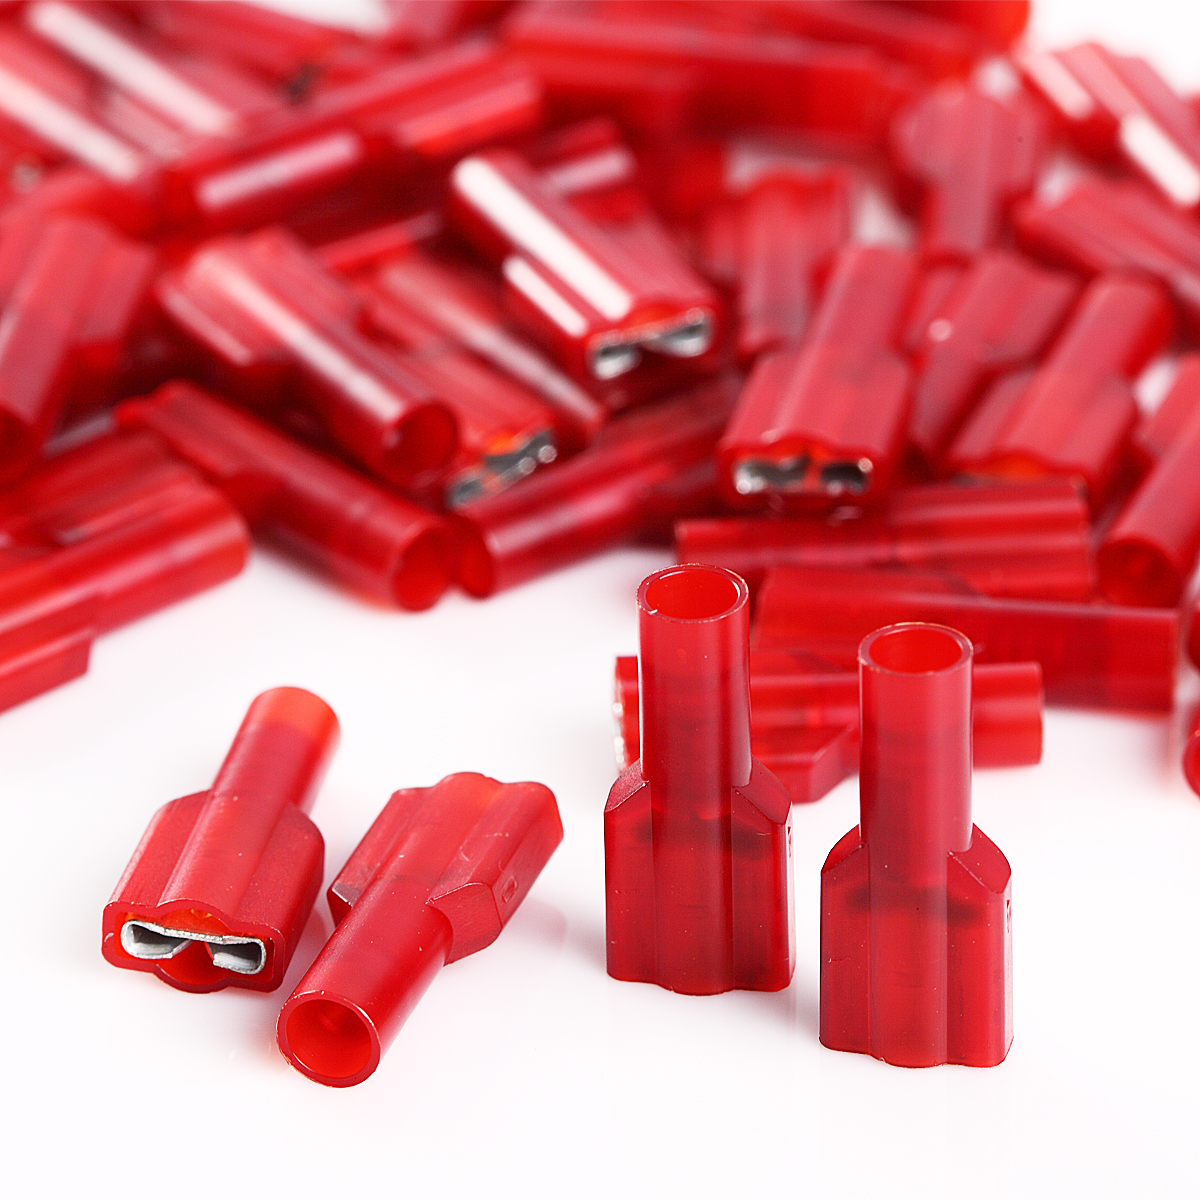 MALE AND FEMALE FULLY INSULATED TERMINAL 22-18 GAUGE 100 PCS RED